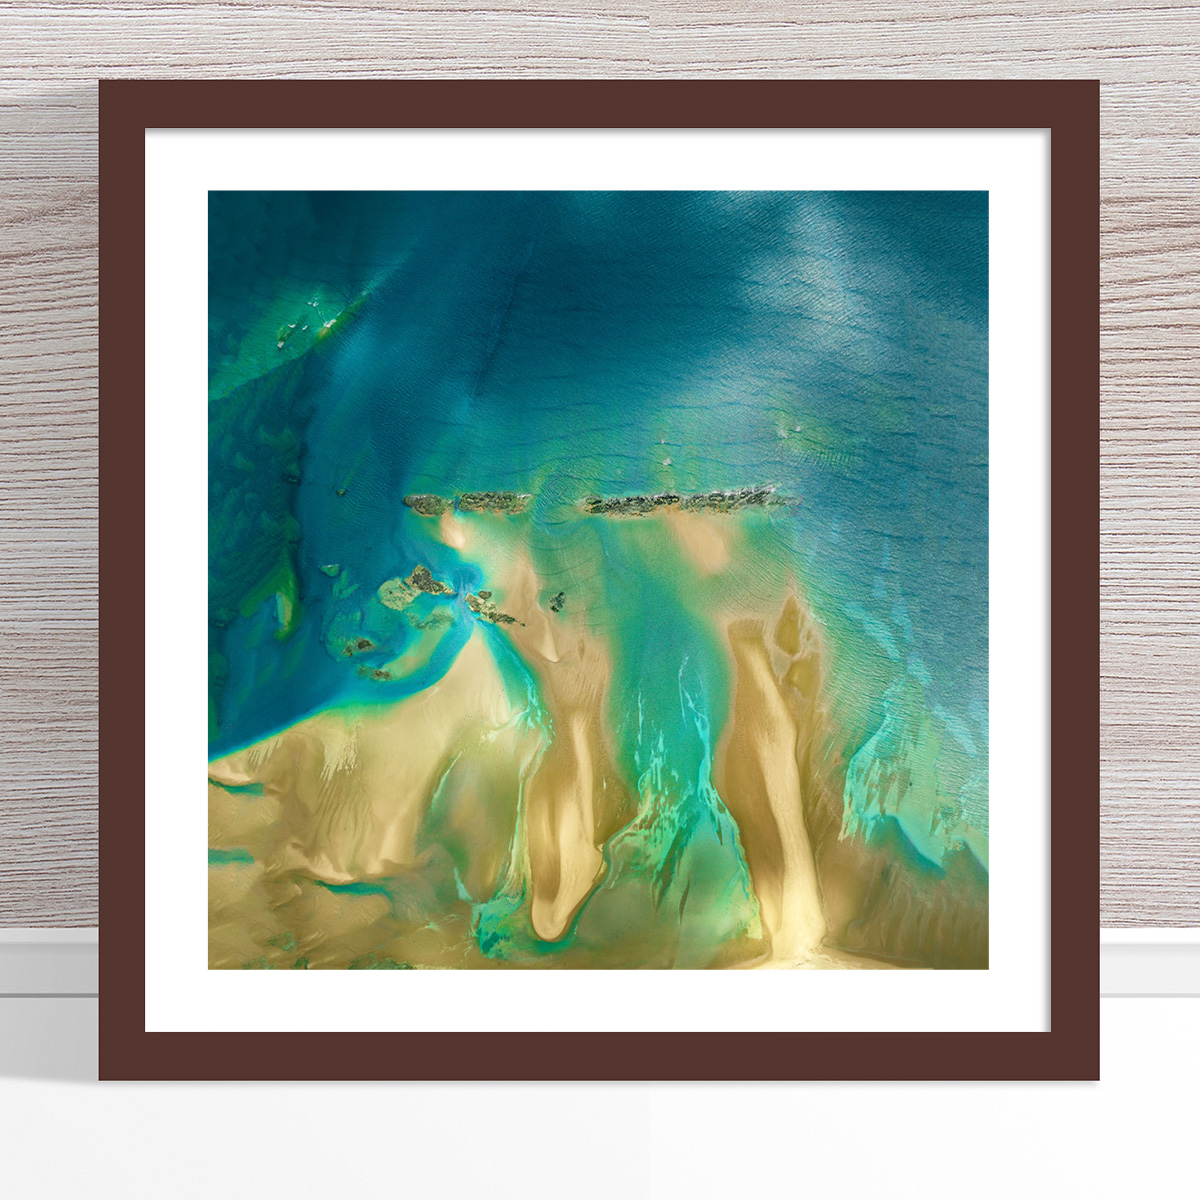 Chris Saunders - 'Aerial Coast 011' Dark Frame